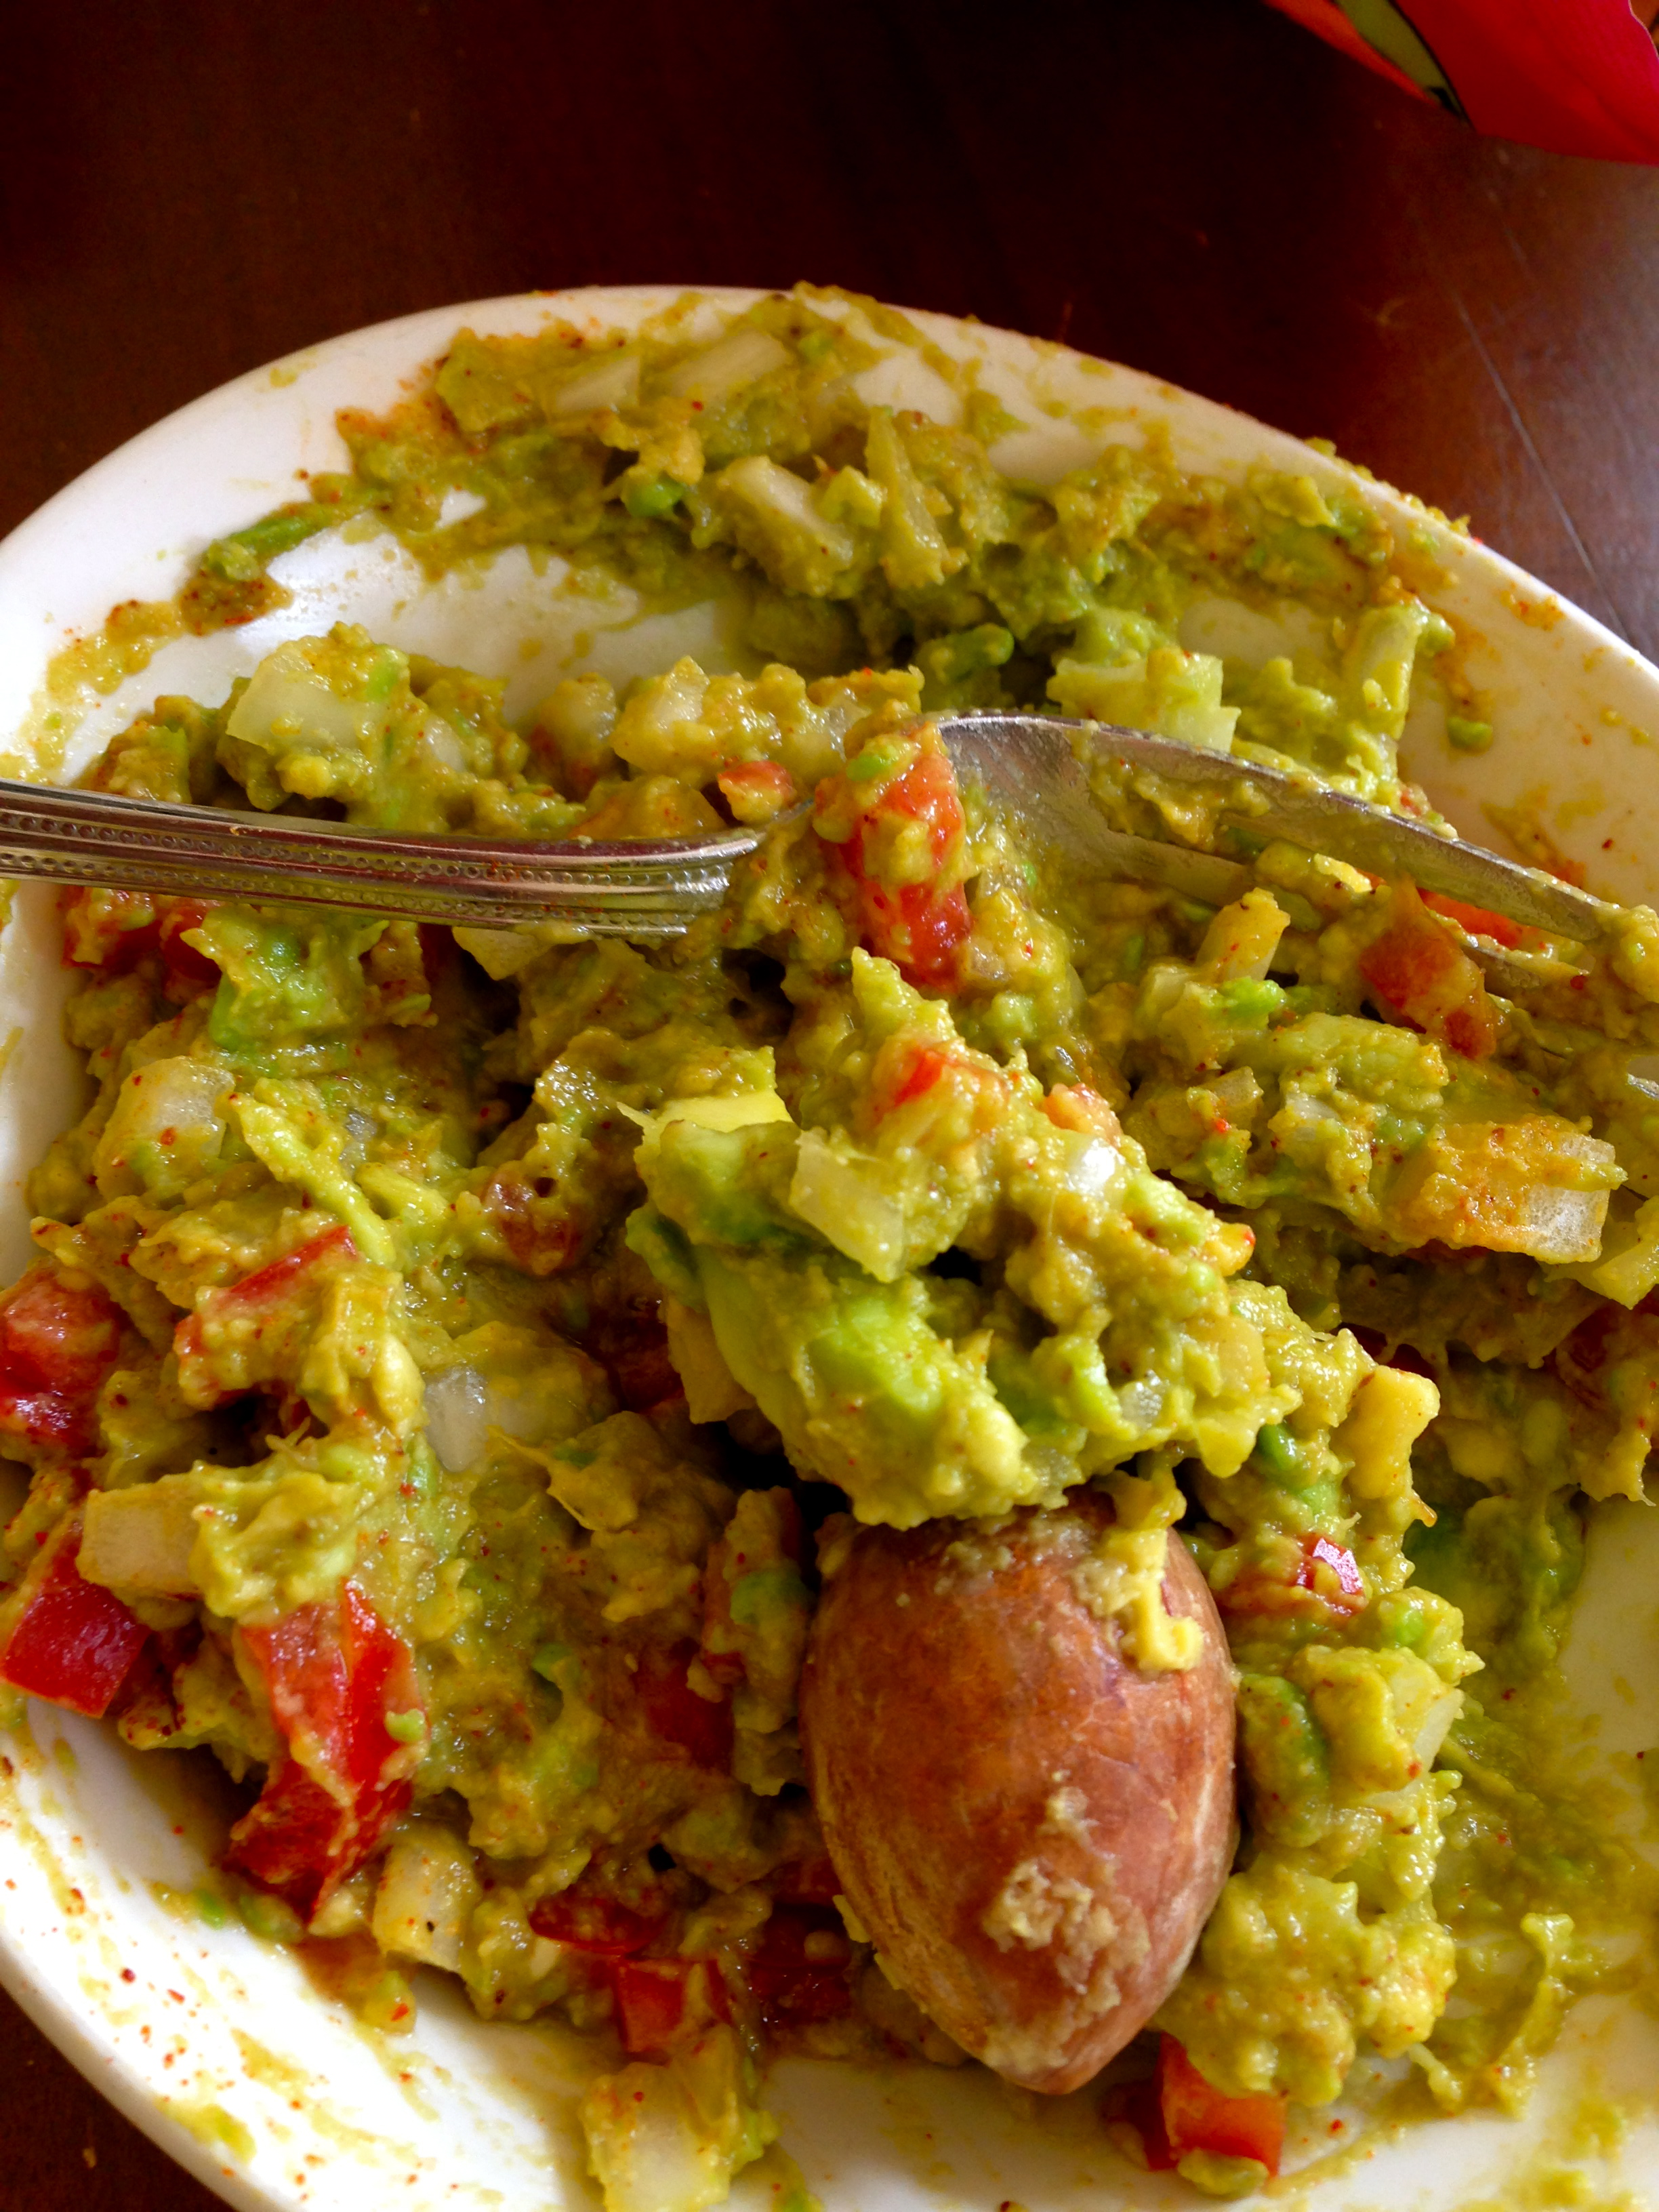 HOLY GUACAMOLE! MEATLESS MONDAY Takes on Guac!